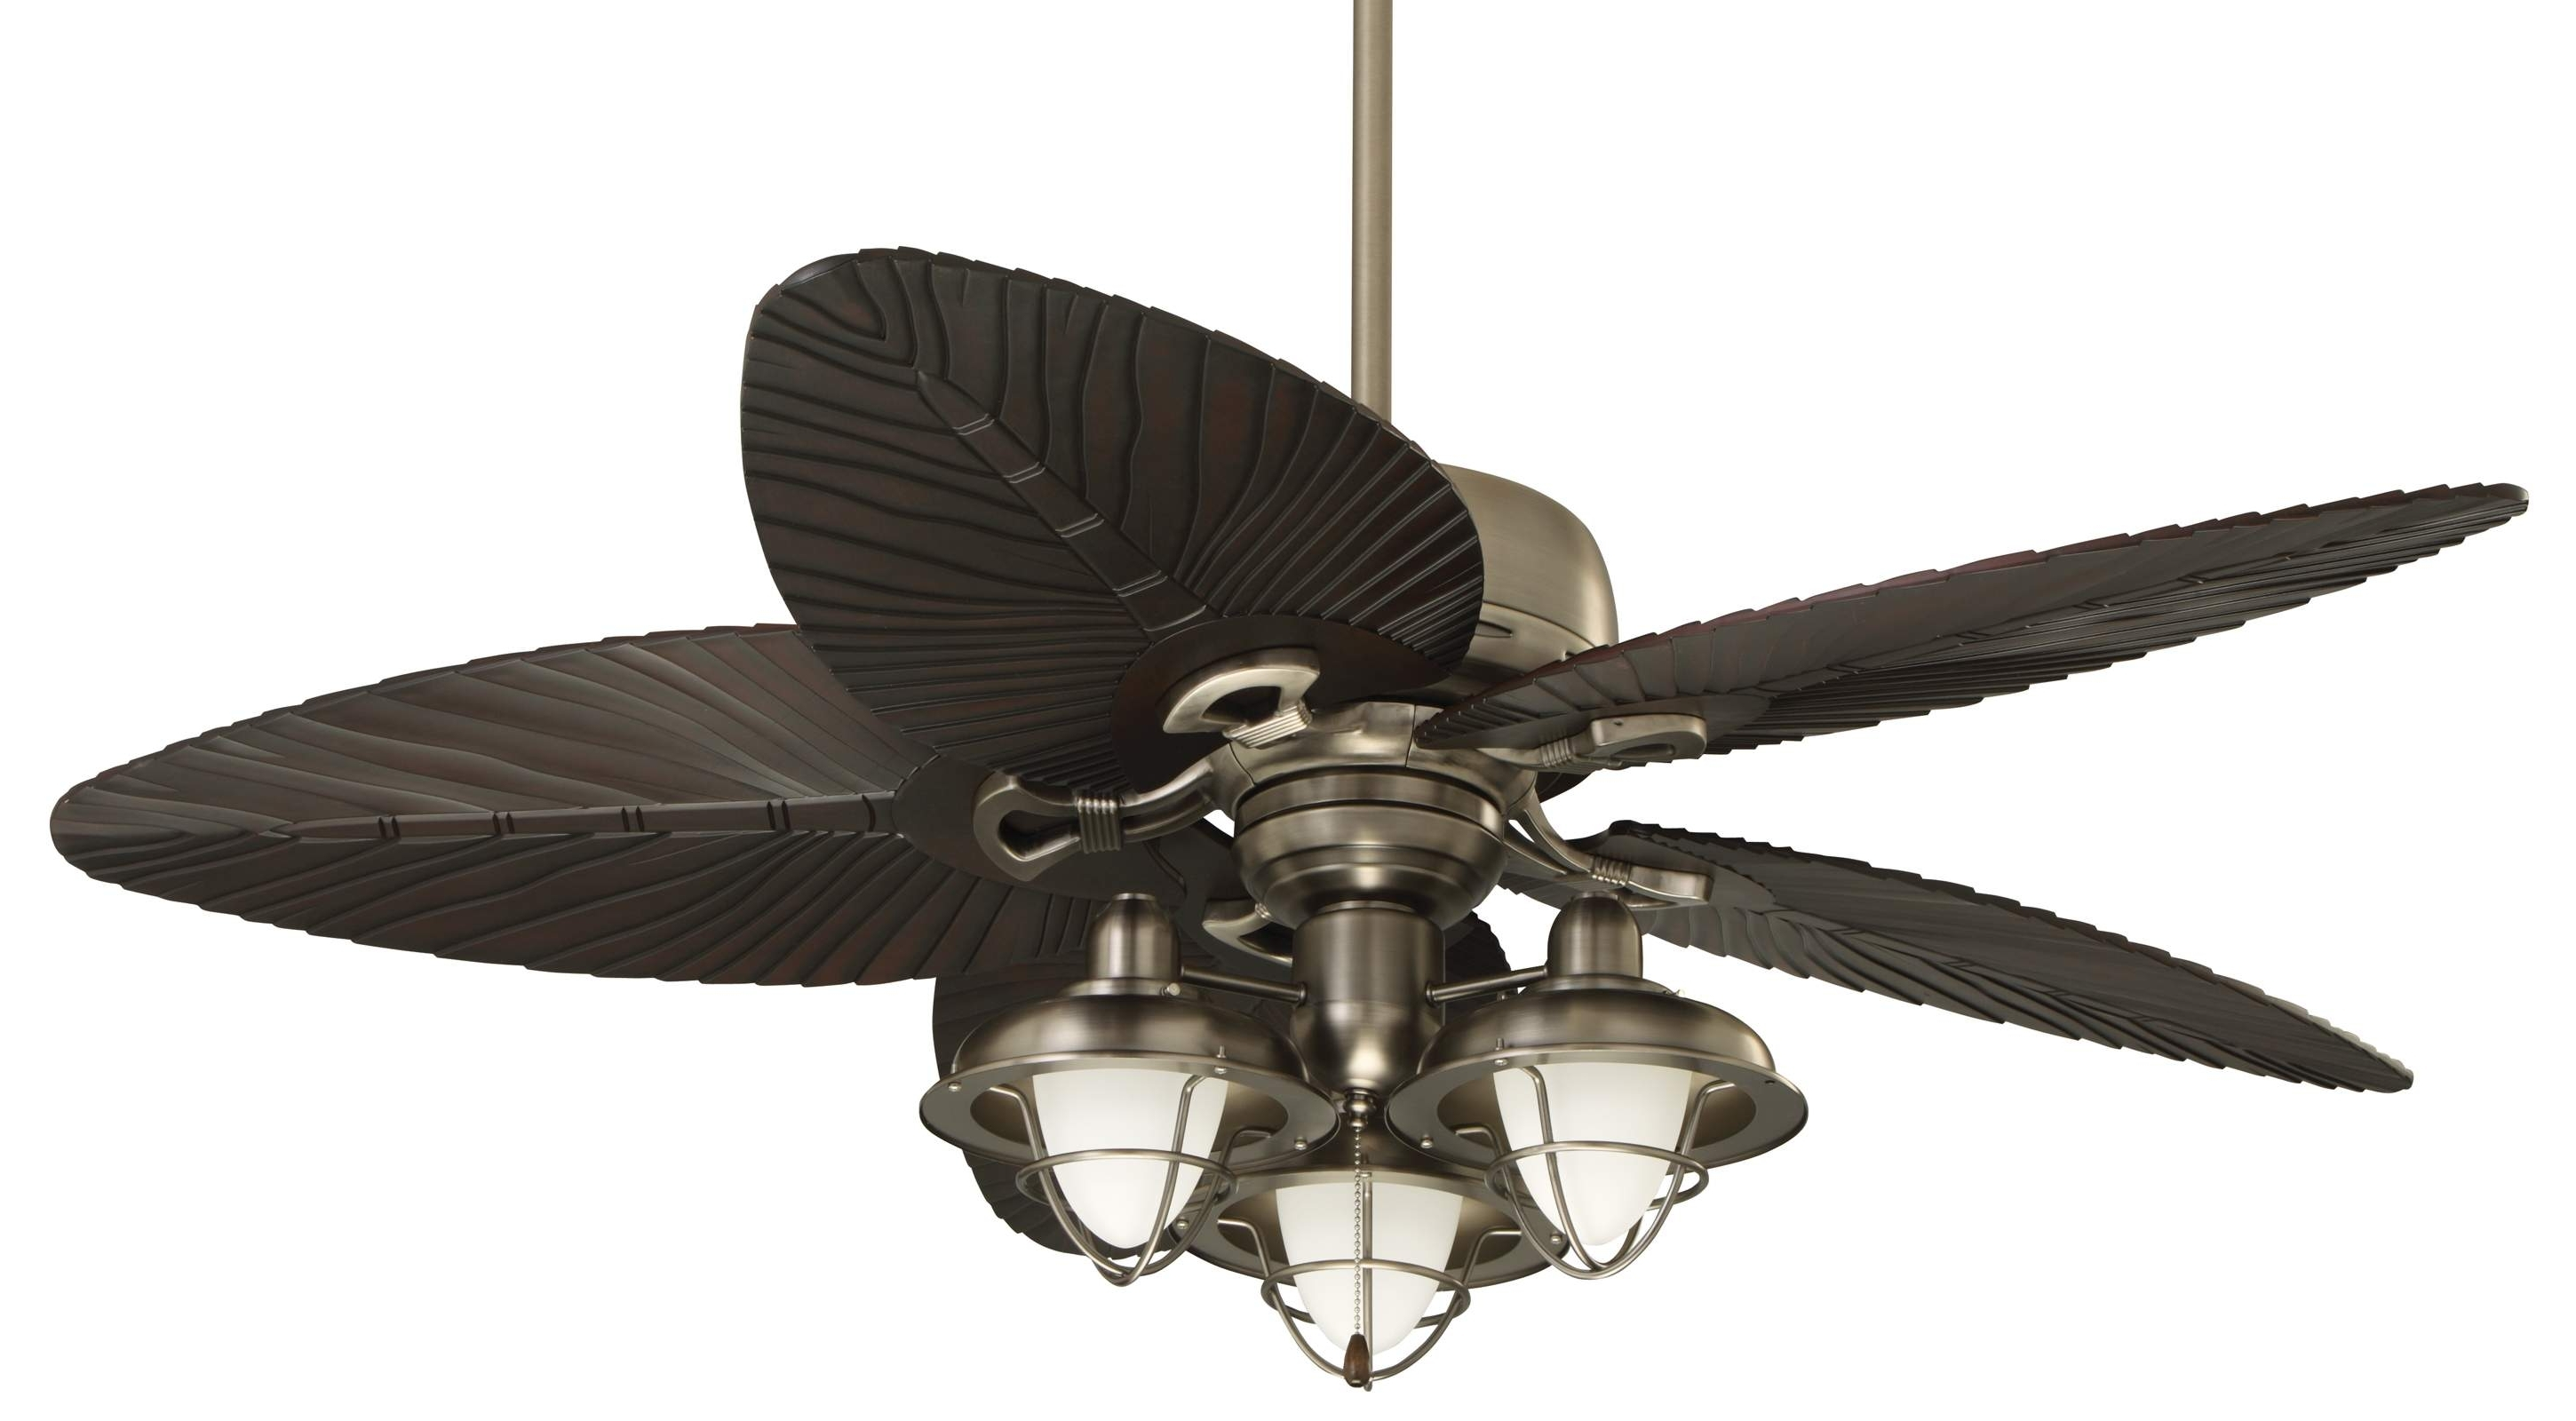 Decor: Bring An Island Look Into Your Home With Cool Ceiling Fan Pertaining To Well Liked Leaf Blades Outdoor Ceiling Fans (View 13 of 20)